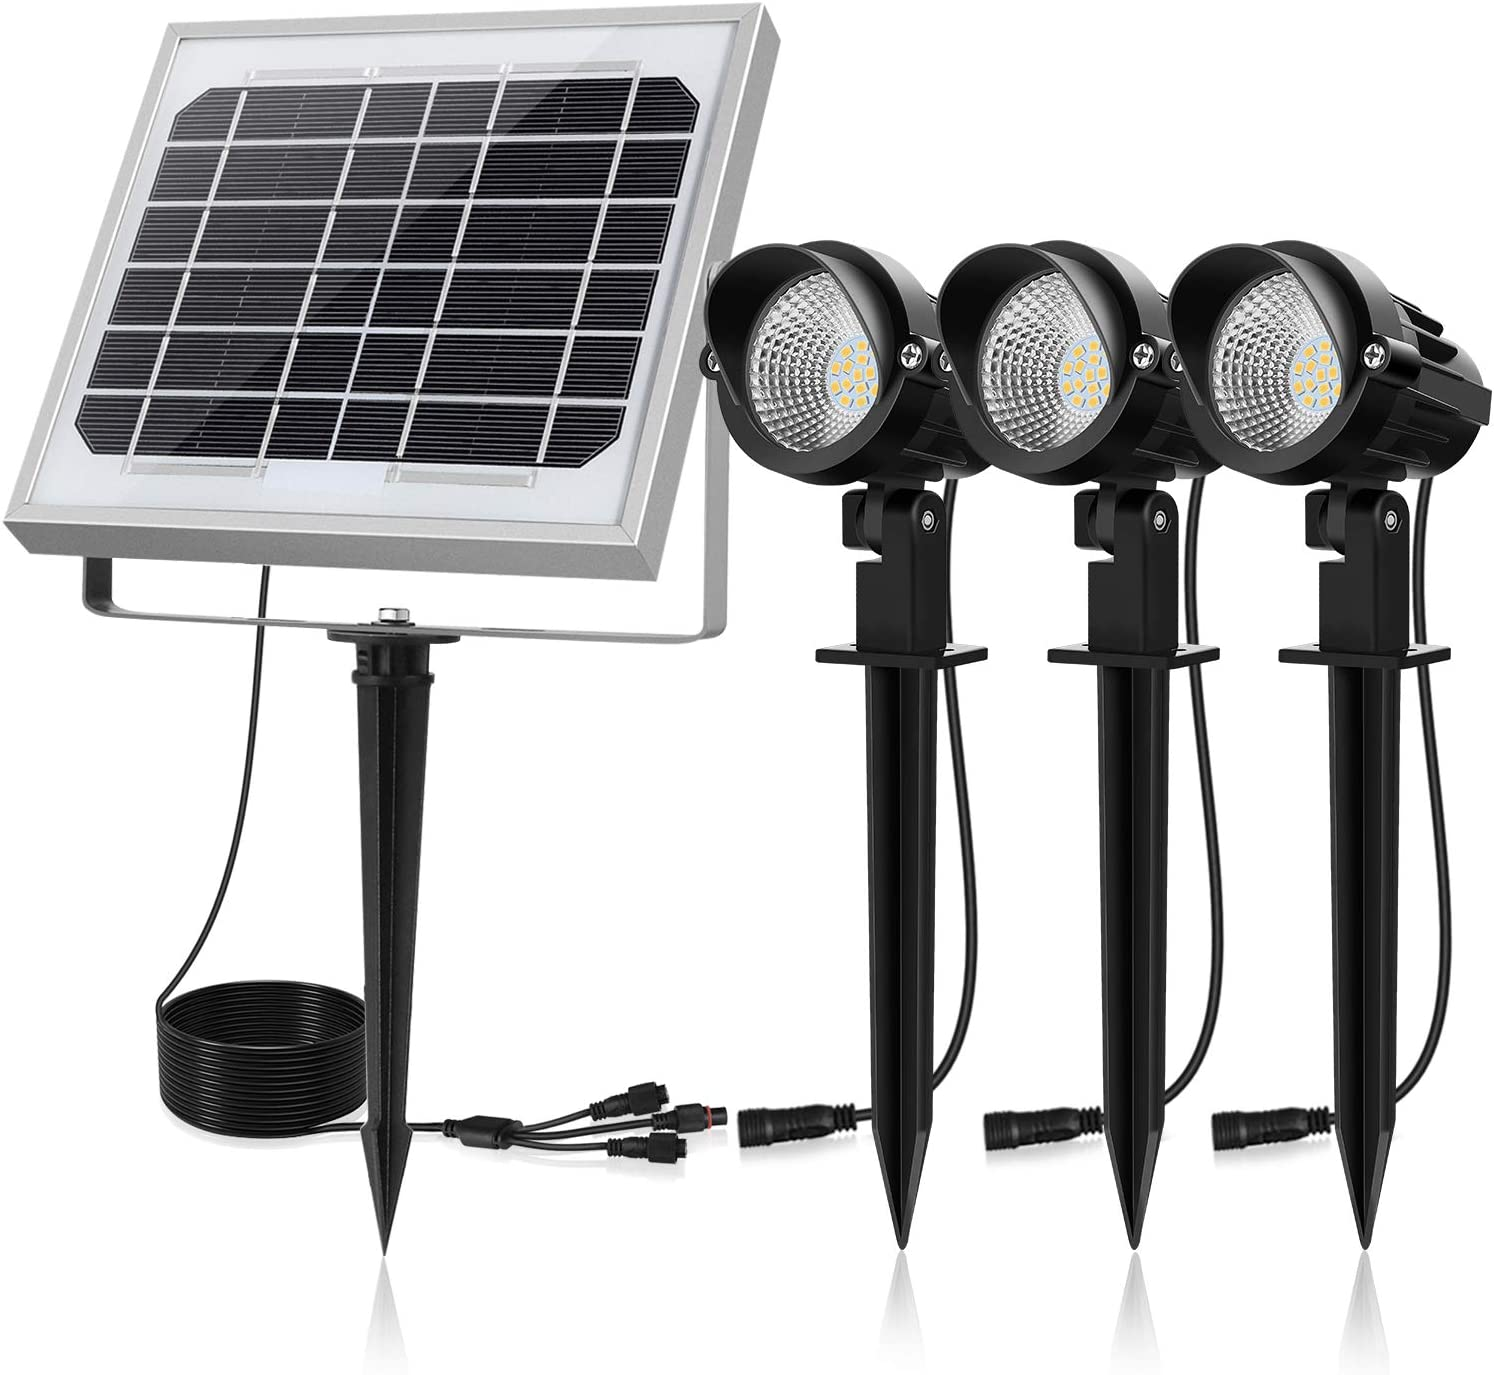 CLY Solar Spotlights LED 3 in 1, Solar Landscape Lights Solar Spot Lights Outdoor, Waterproof IP66, Solar Powered Lights Wall Lights Security Lighting for Garden, Lawn, Patio, Yard, 3000K Warm White